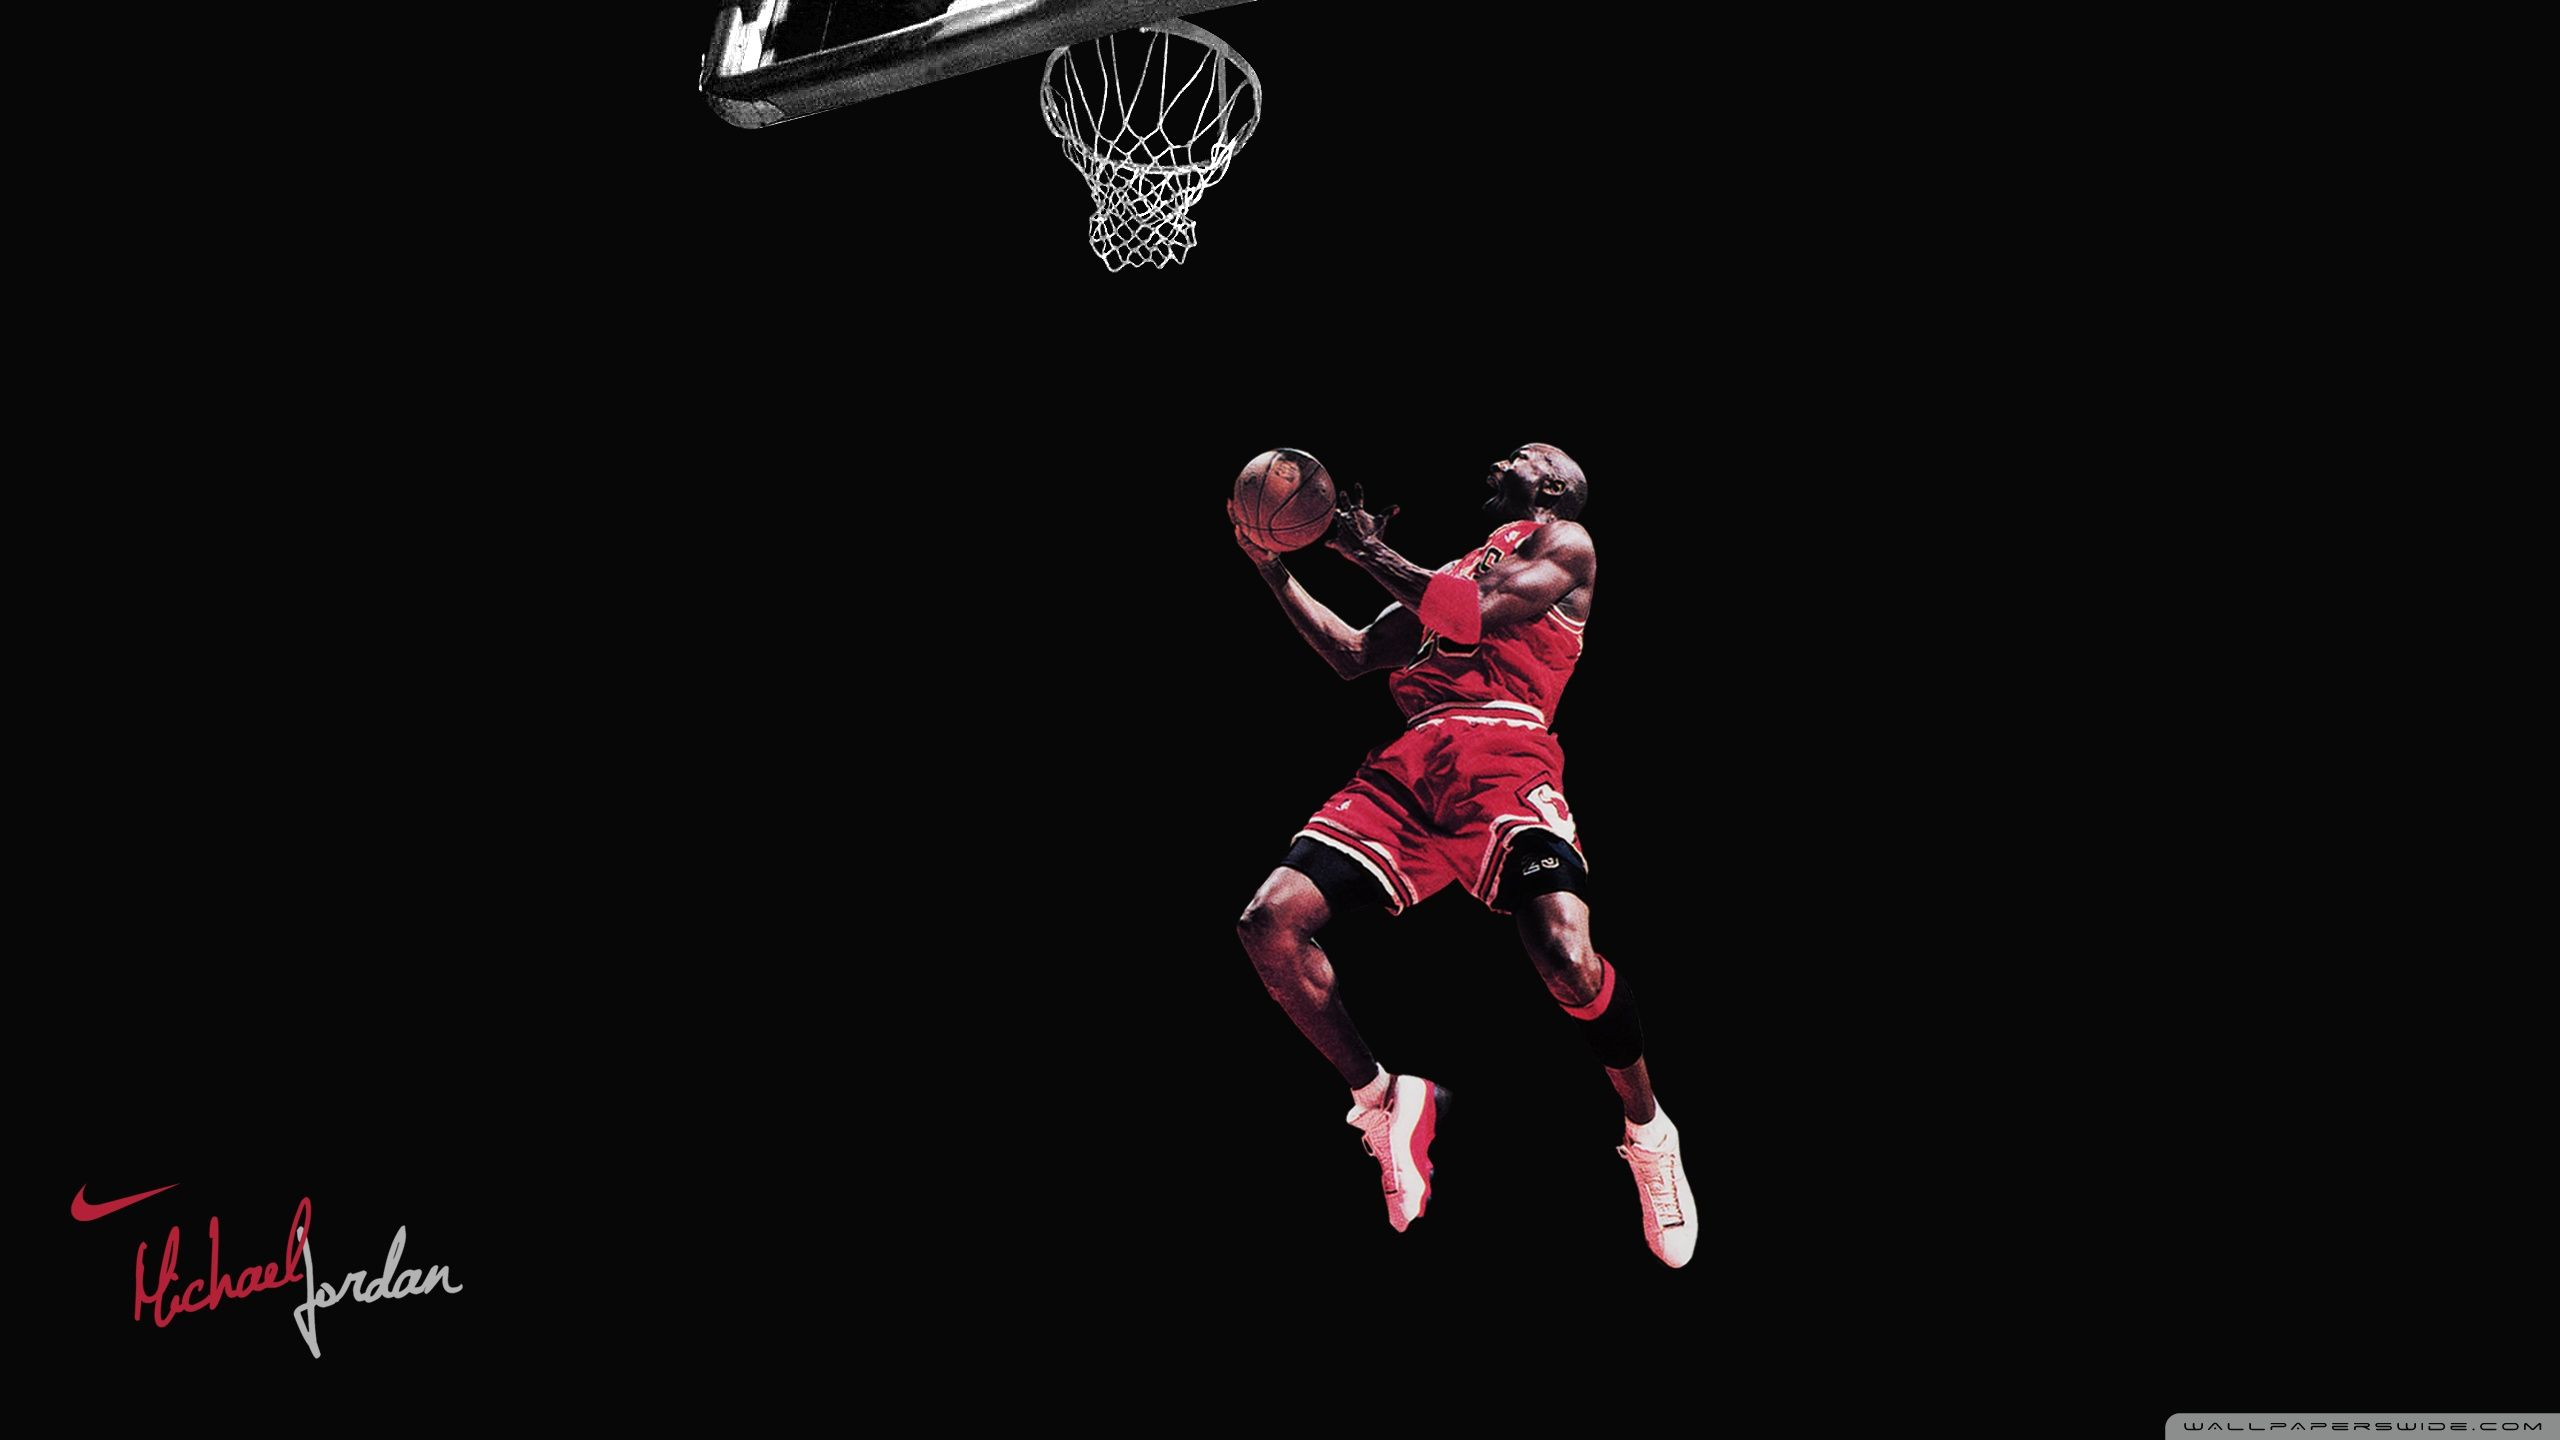 Jordan 4K Wallpapers   Top Jordan 4K Backgrounds 2560x1440